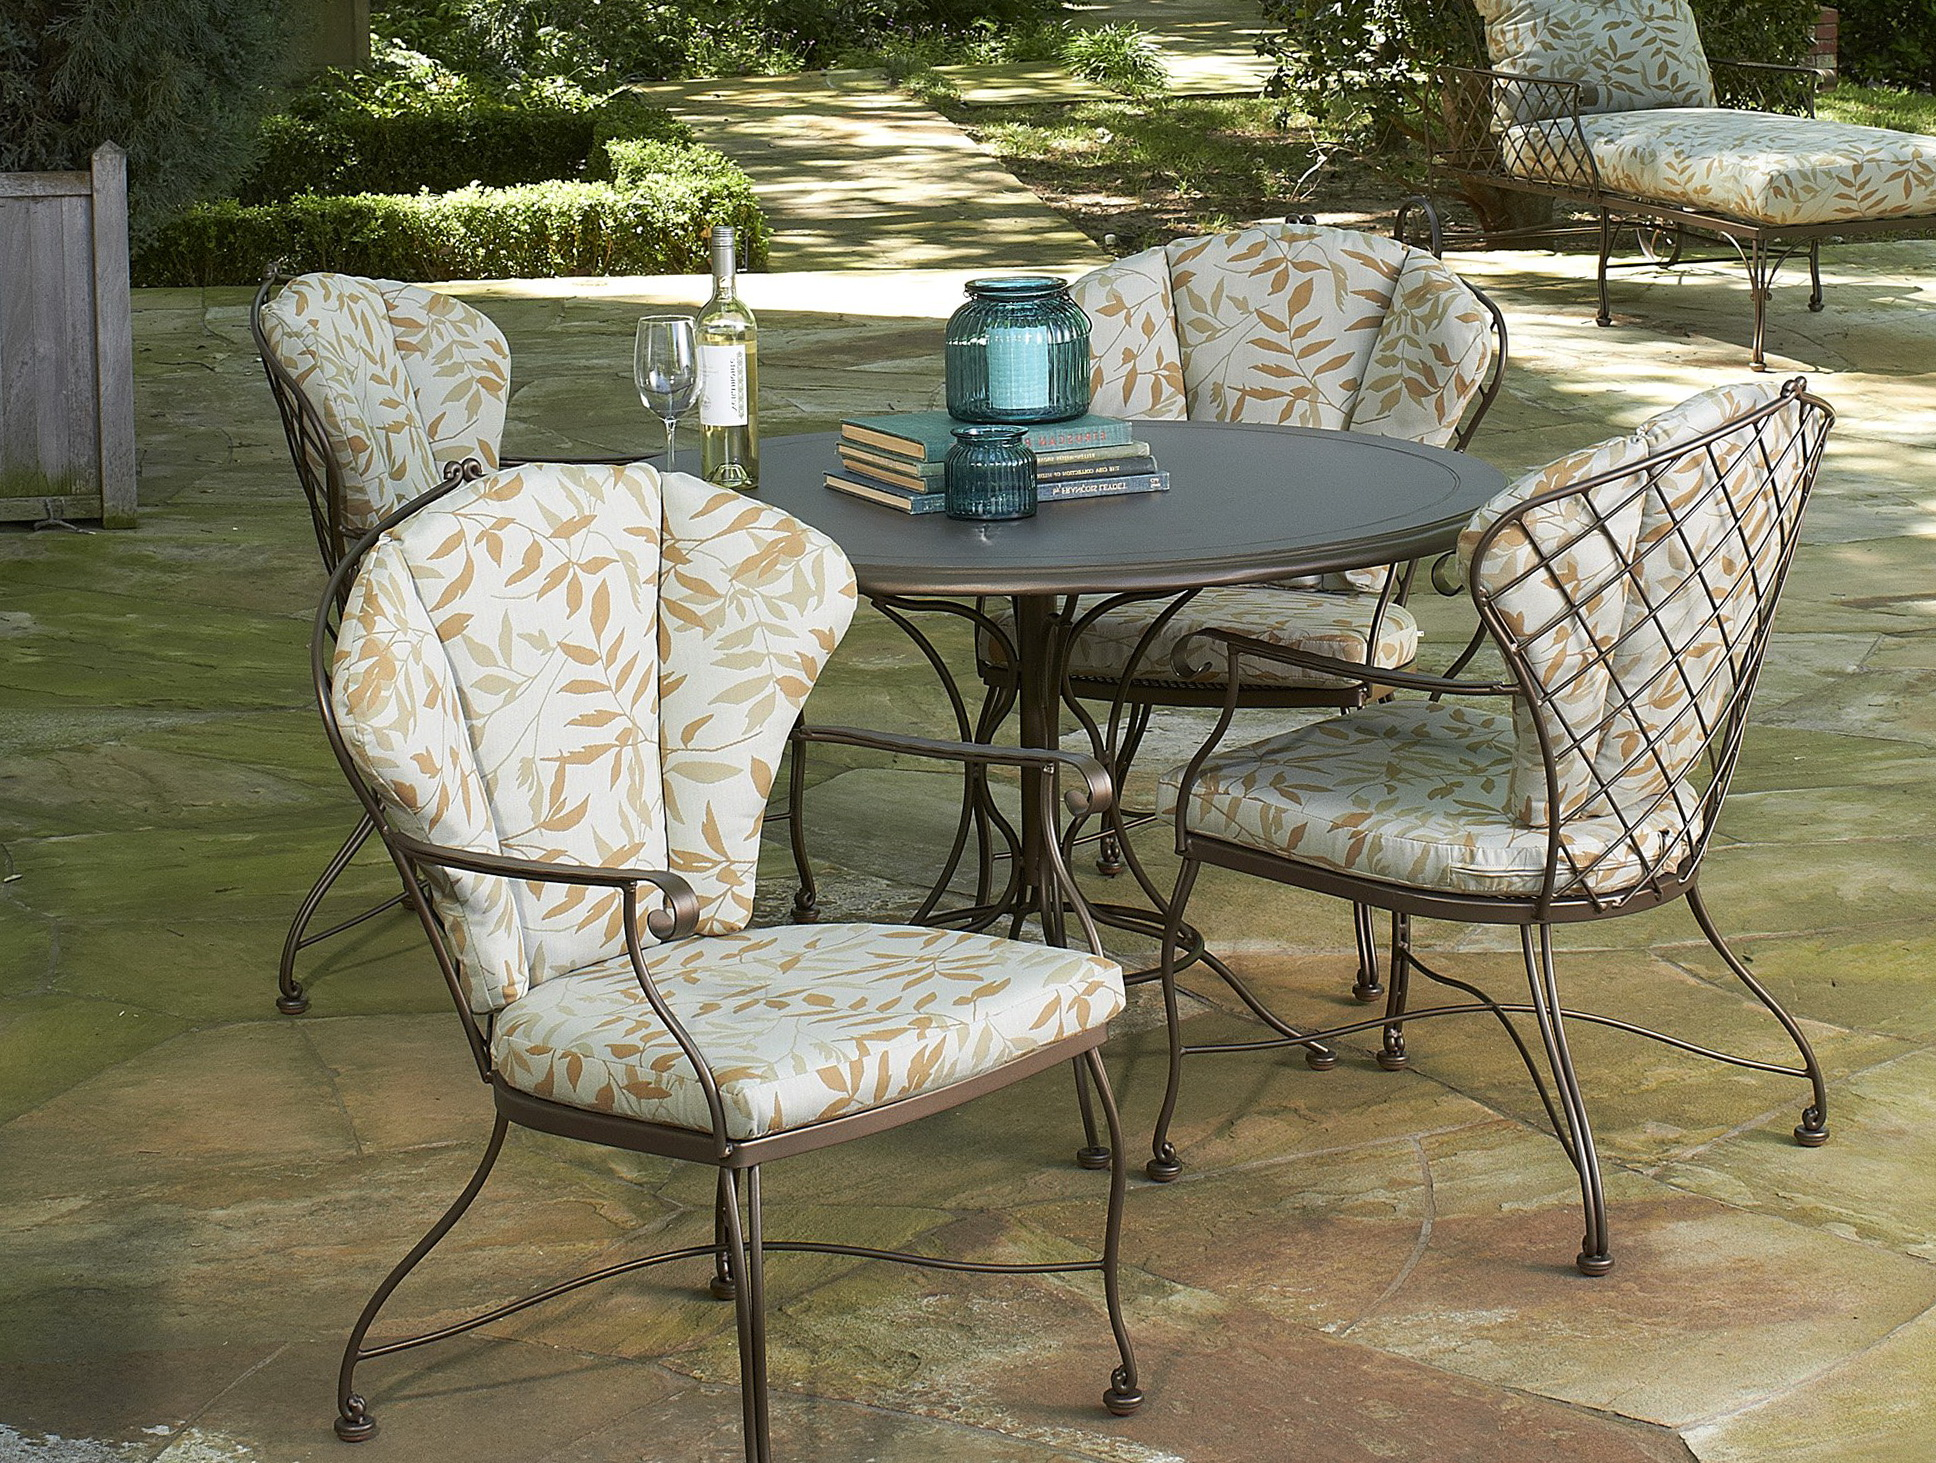 Cushions for patio furniture sale home design ideas for Patio furniture cushion covers sale